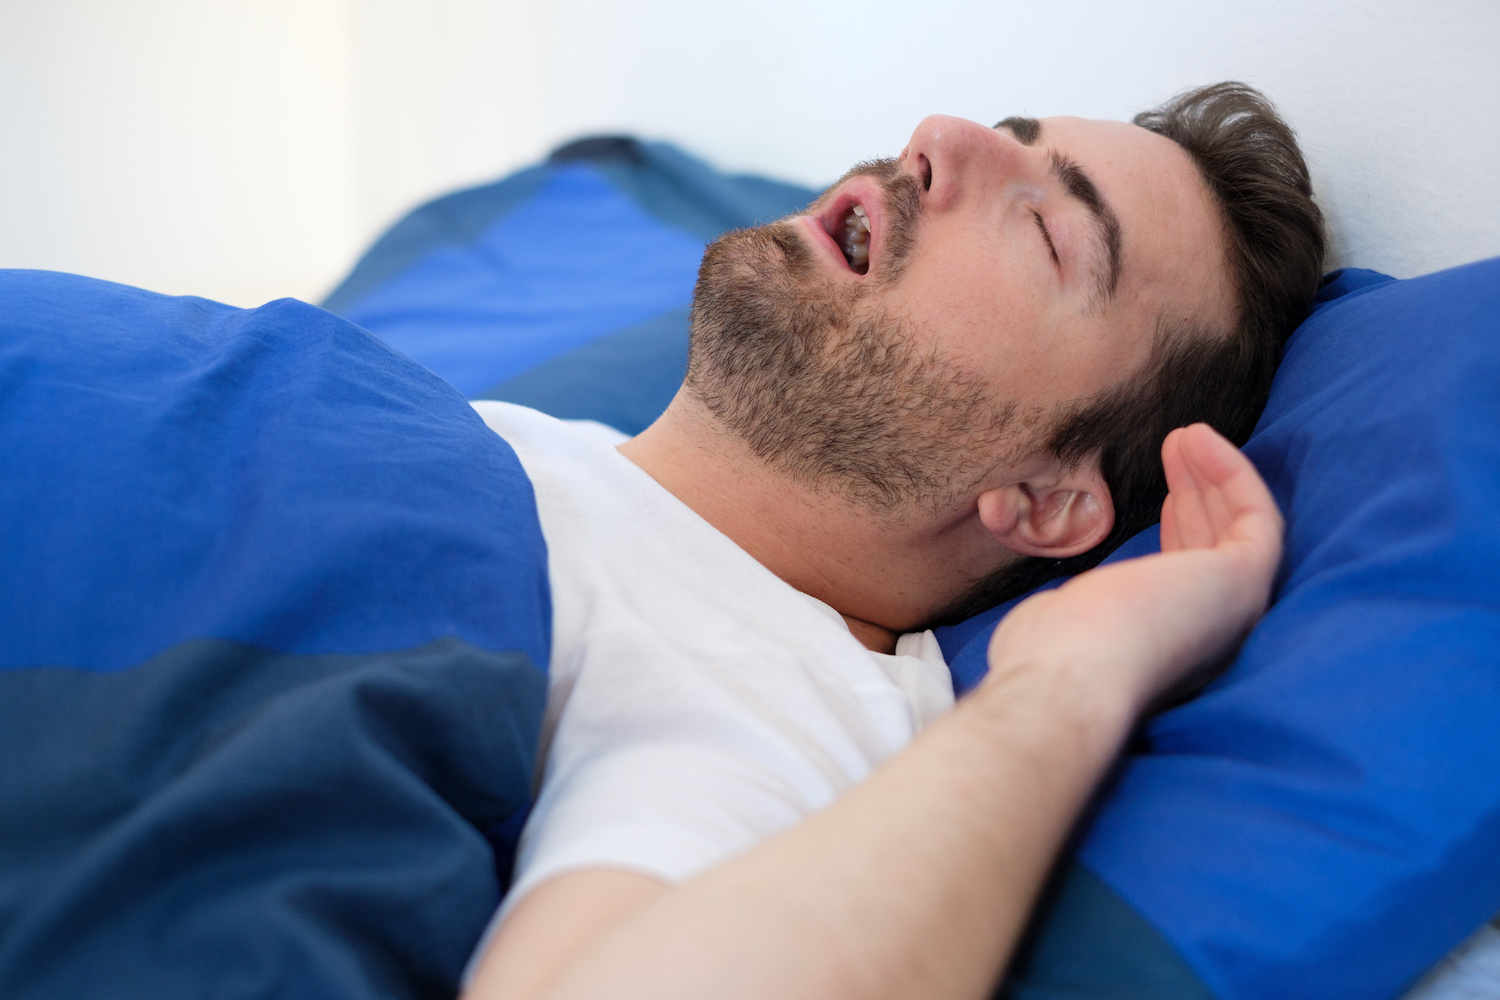 Man snoring loudly in bed